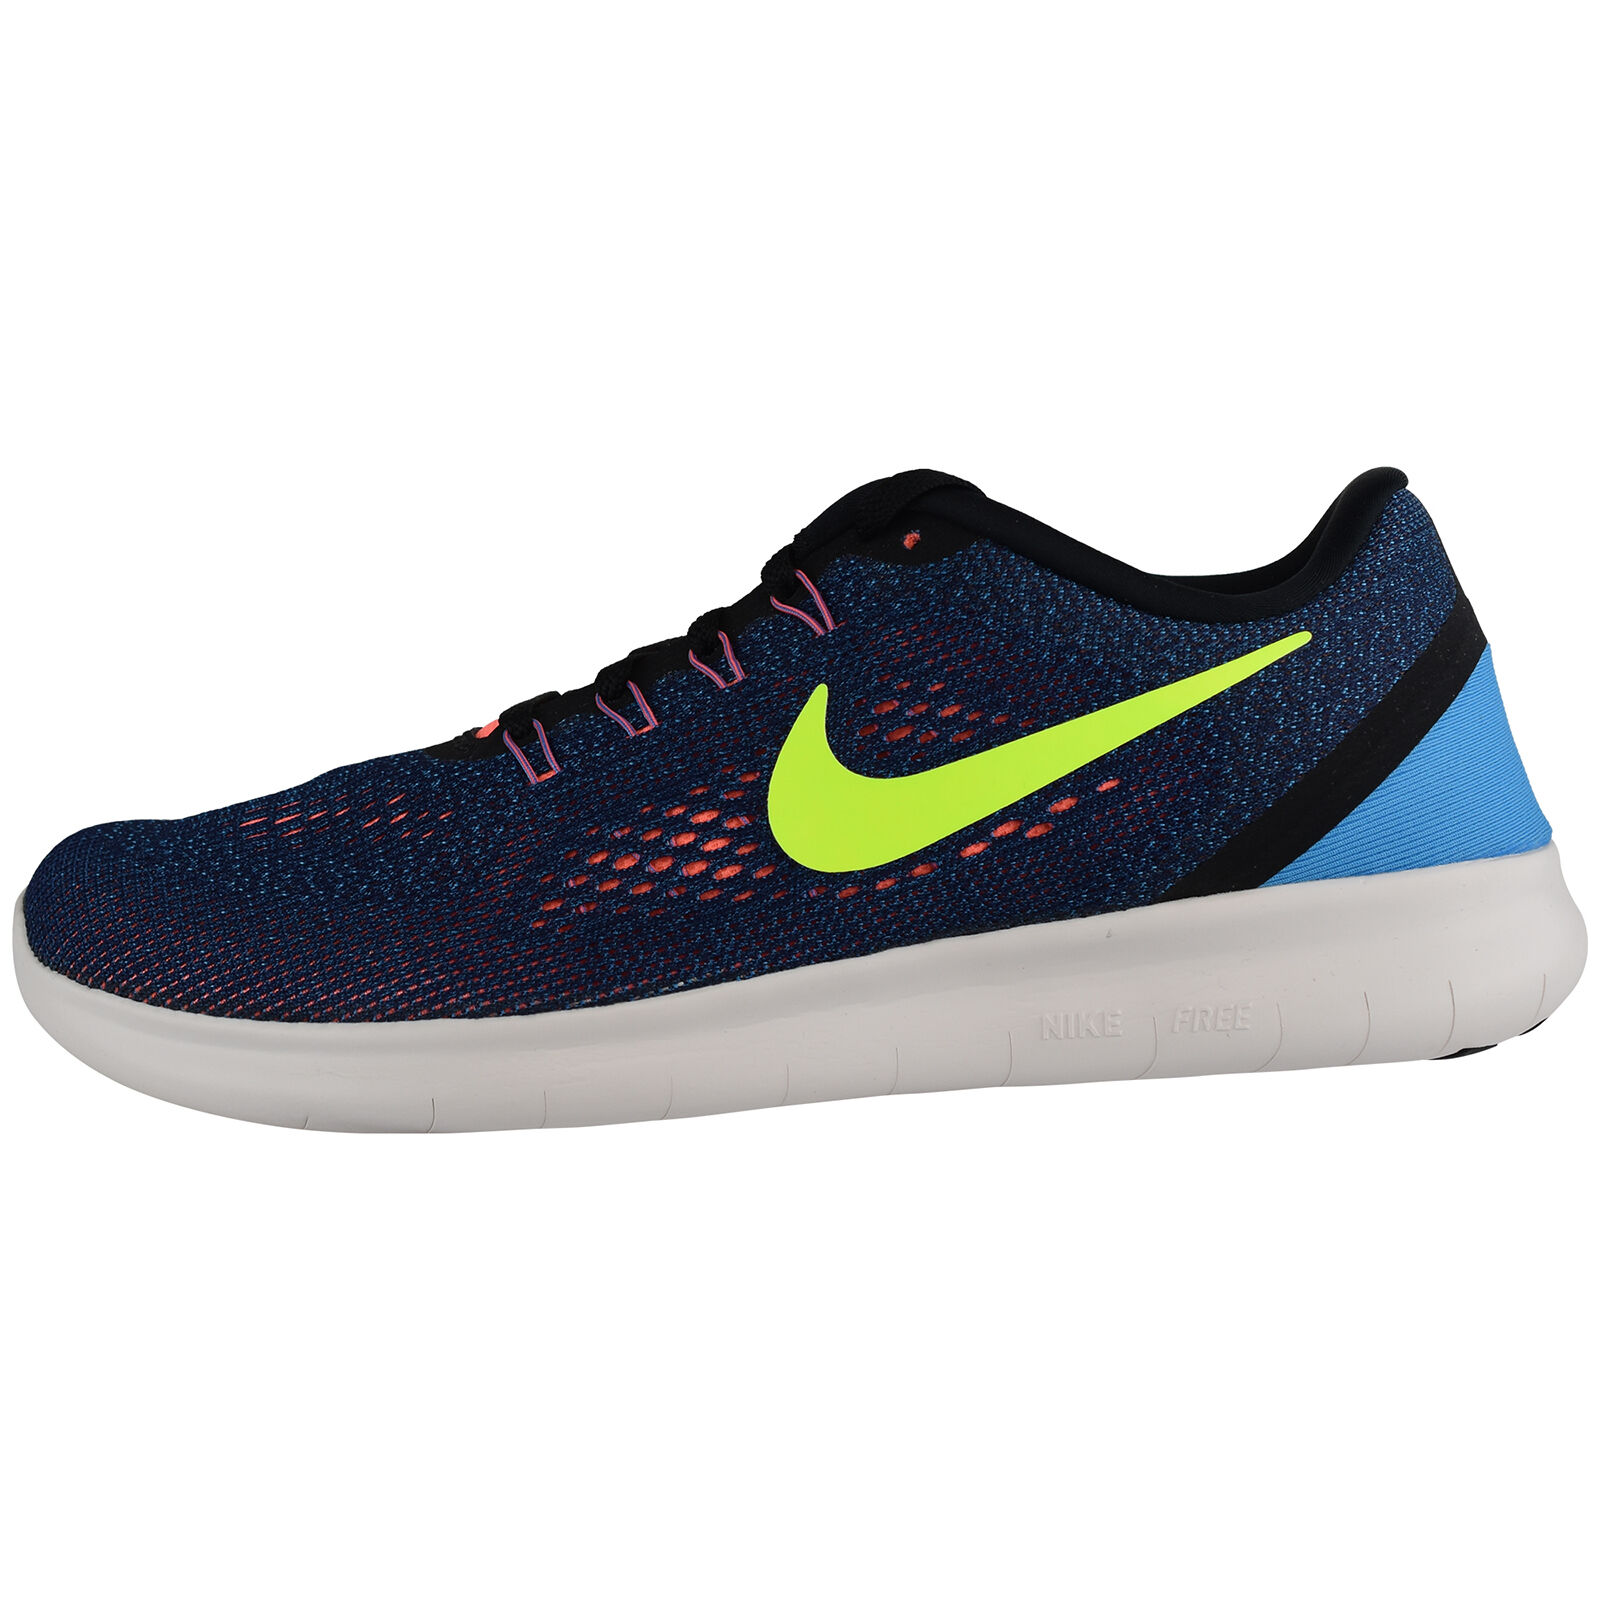 WMNS NIKE FREE RN 831509-501 LIFESTYLE Zapatillas Running Zapatillas Deportivas The latest discount shoes for men and women